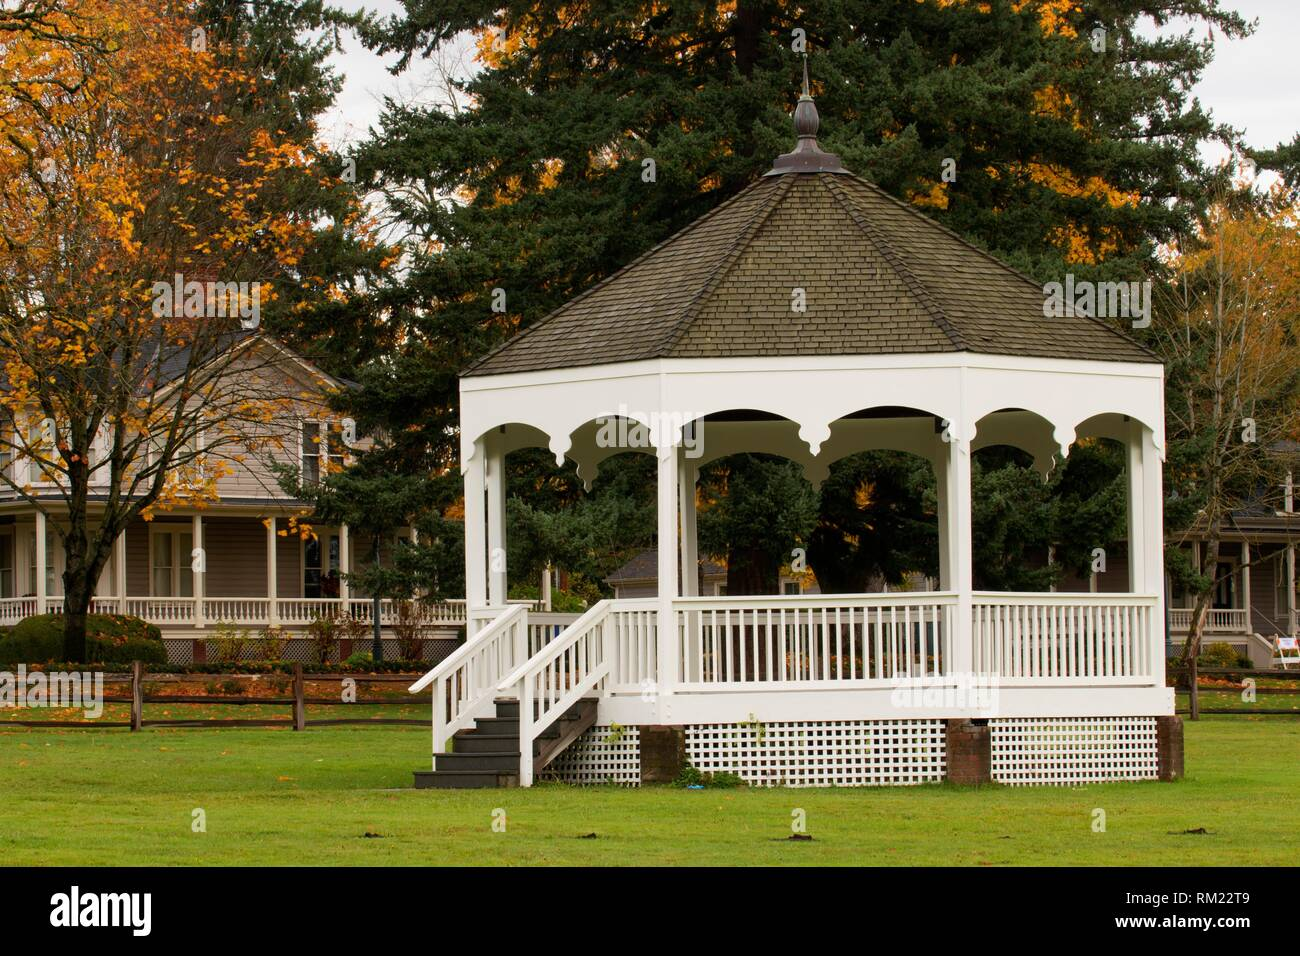 Bandstand, Fort Vancouver National Historic Site, Vancouver National Historic Reserve, Washington. - Stock Image